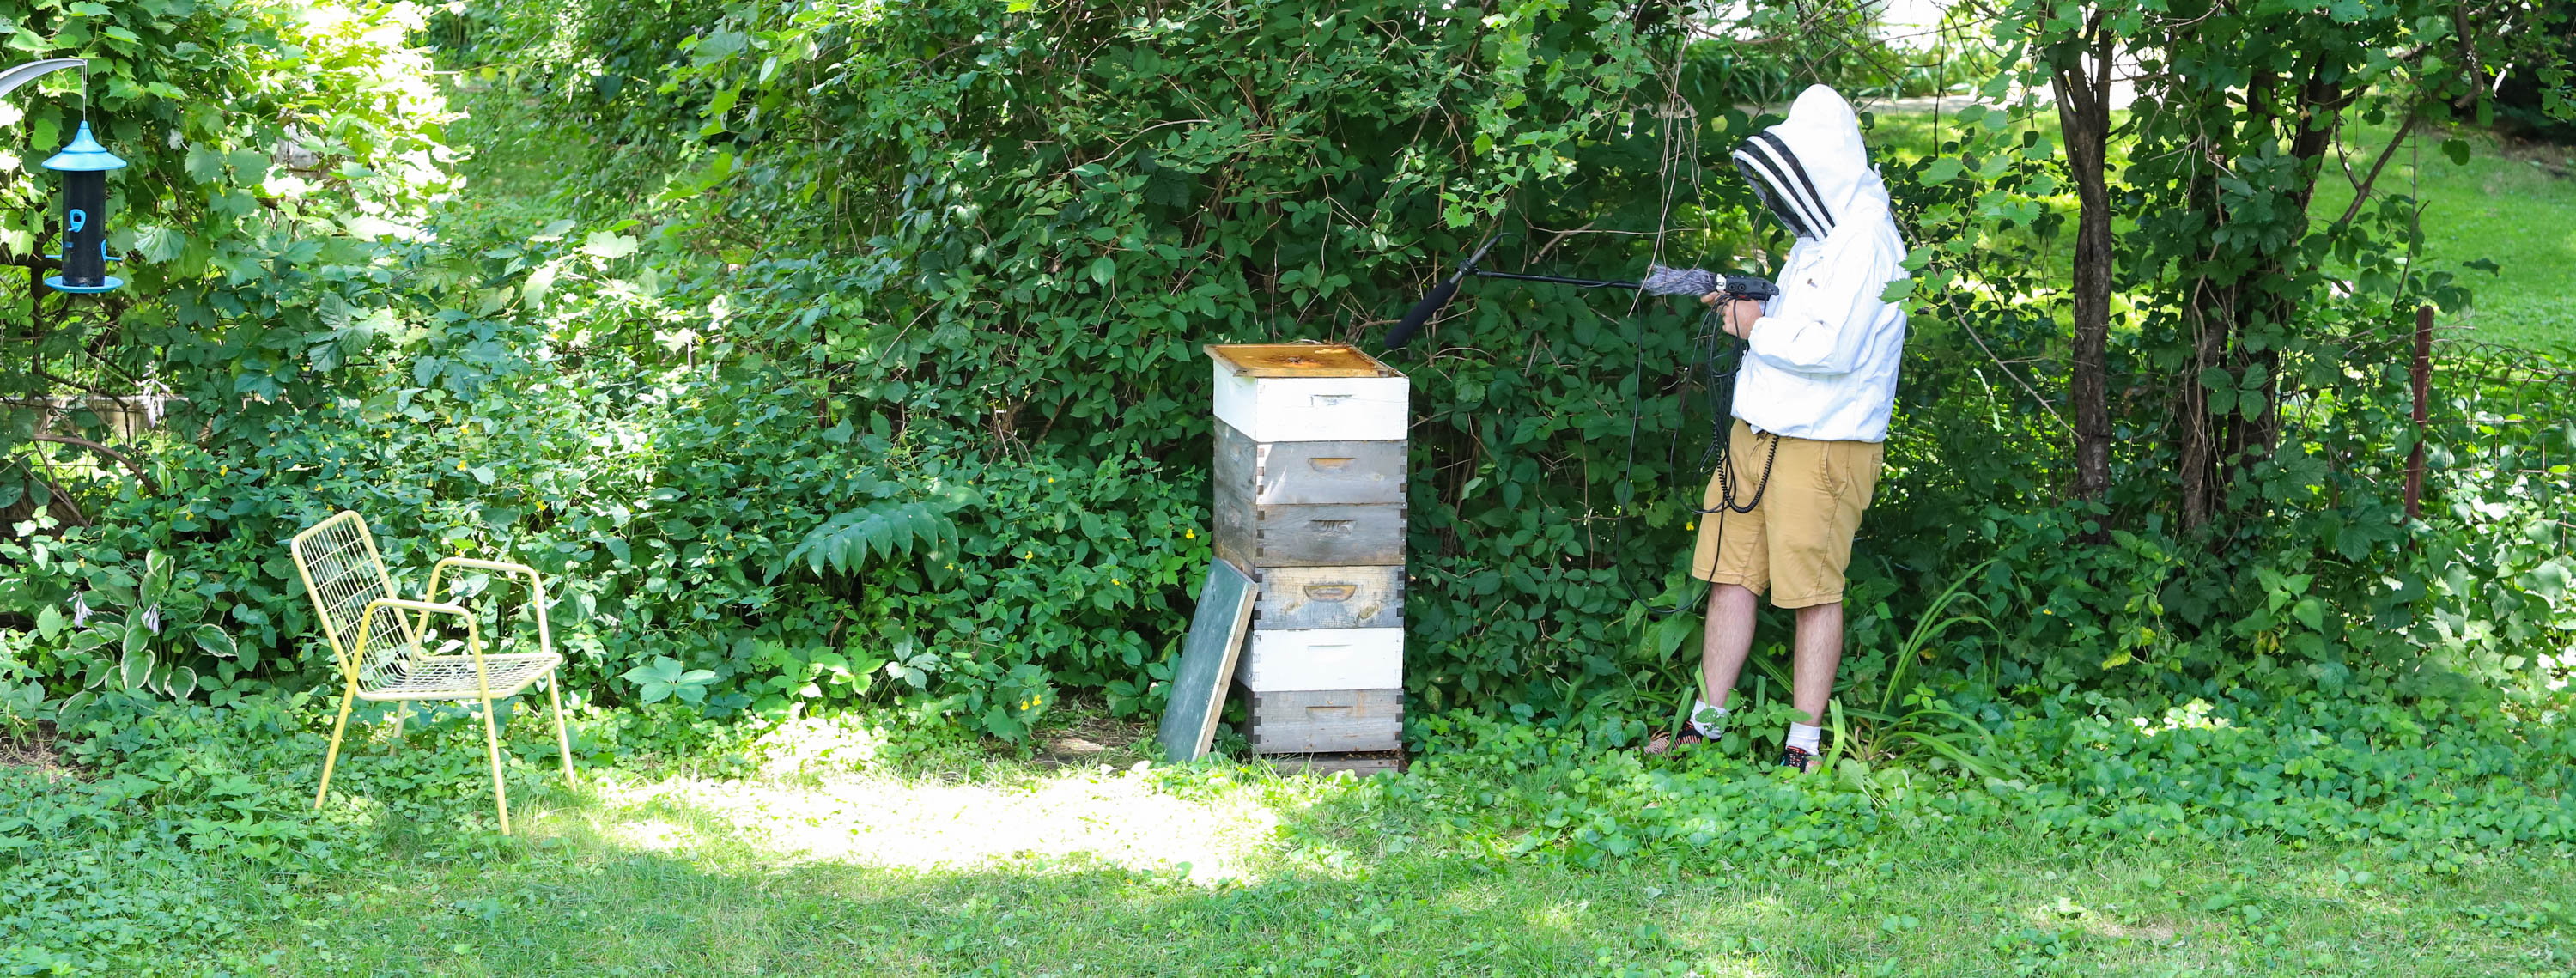 Producer Mark Riechers records some extra bee ambience. Shorts were ill-advised but he never got stung. <em>Shannon Henry Kleiber&nbsp;(TTBOOK)</em>